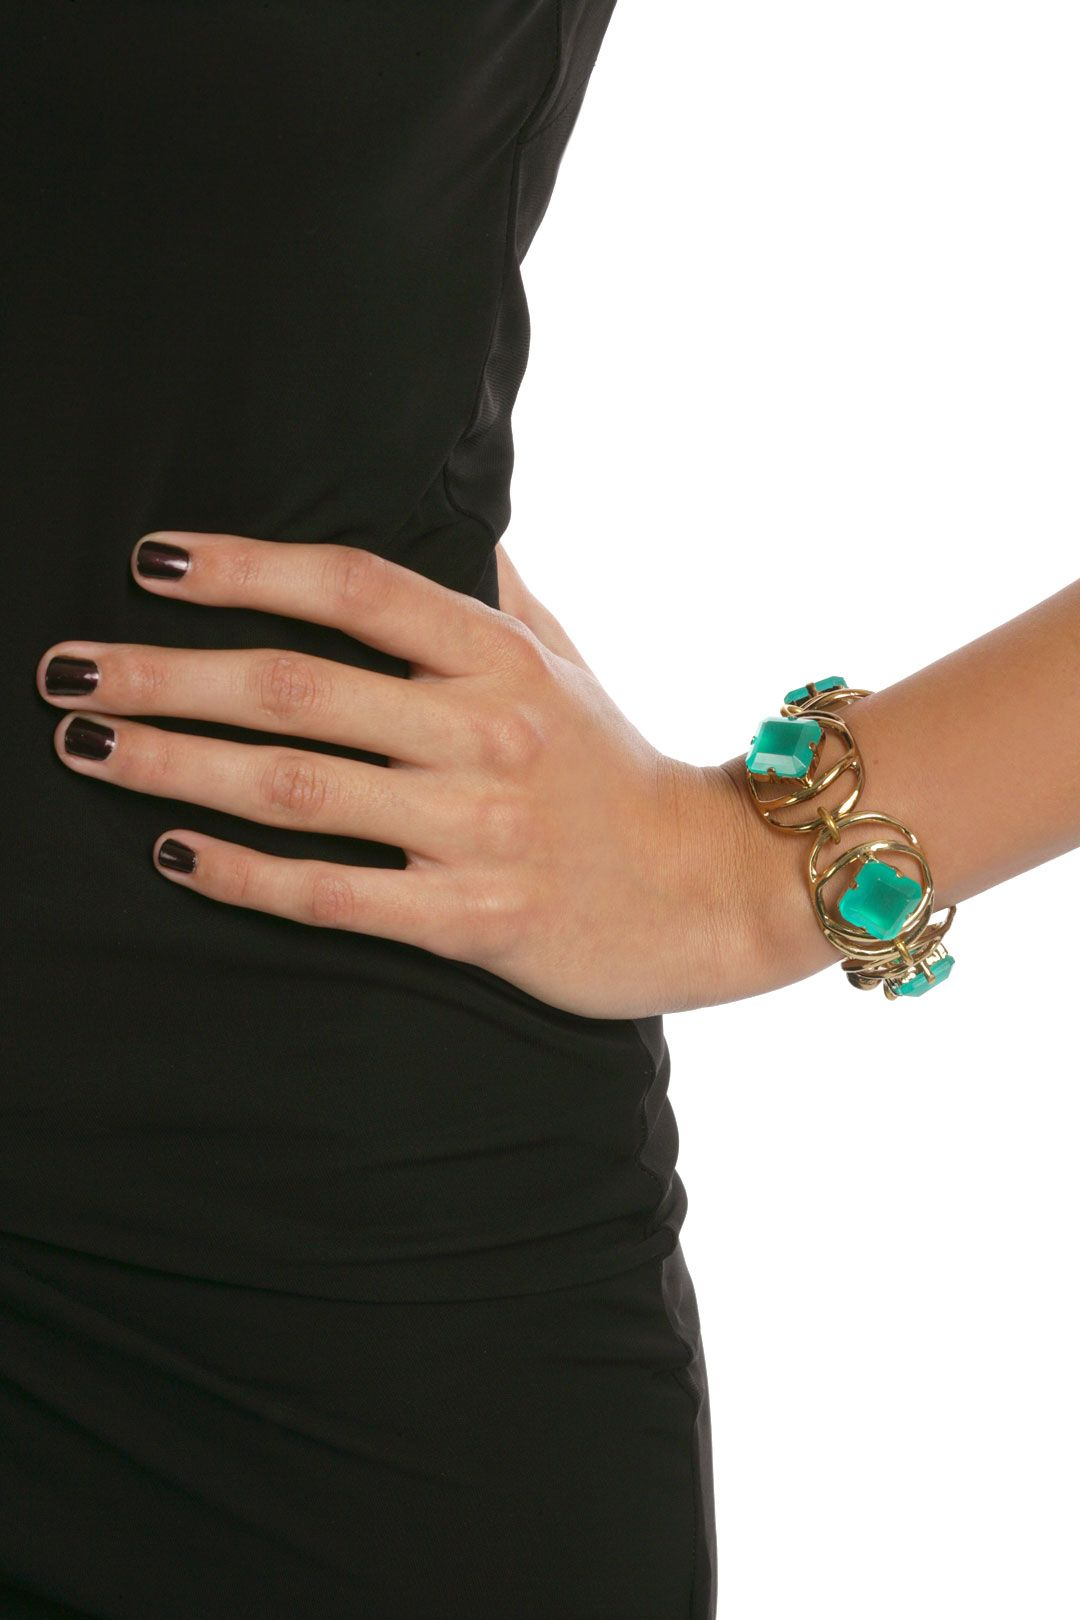 Althea Green Bracelet by Lulu Frost. Love the manicure and nail shape too